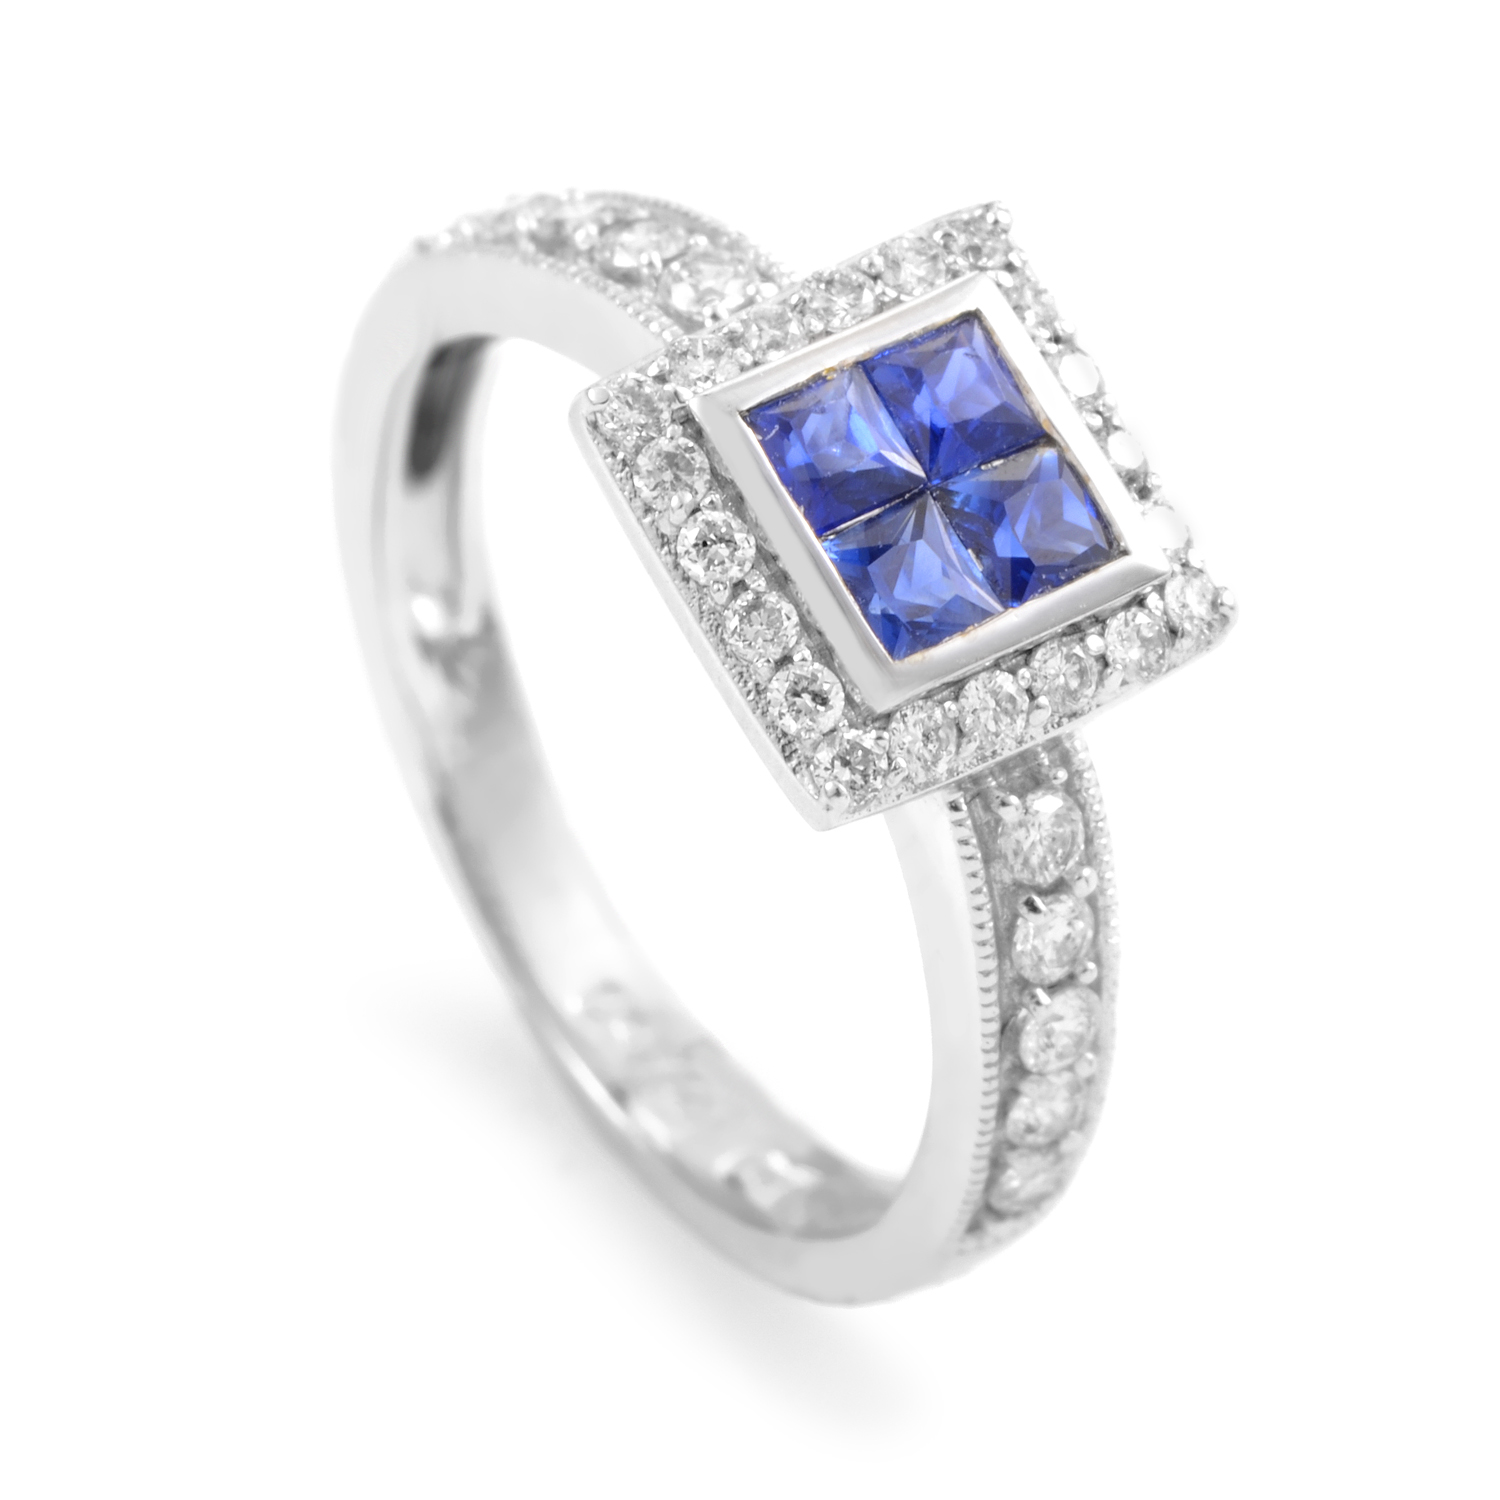 18K White Gold Sapphire & Diamond Ring RC8-10573WSA